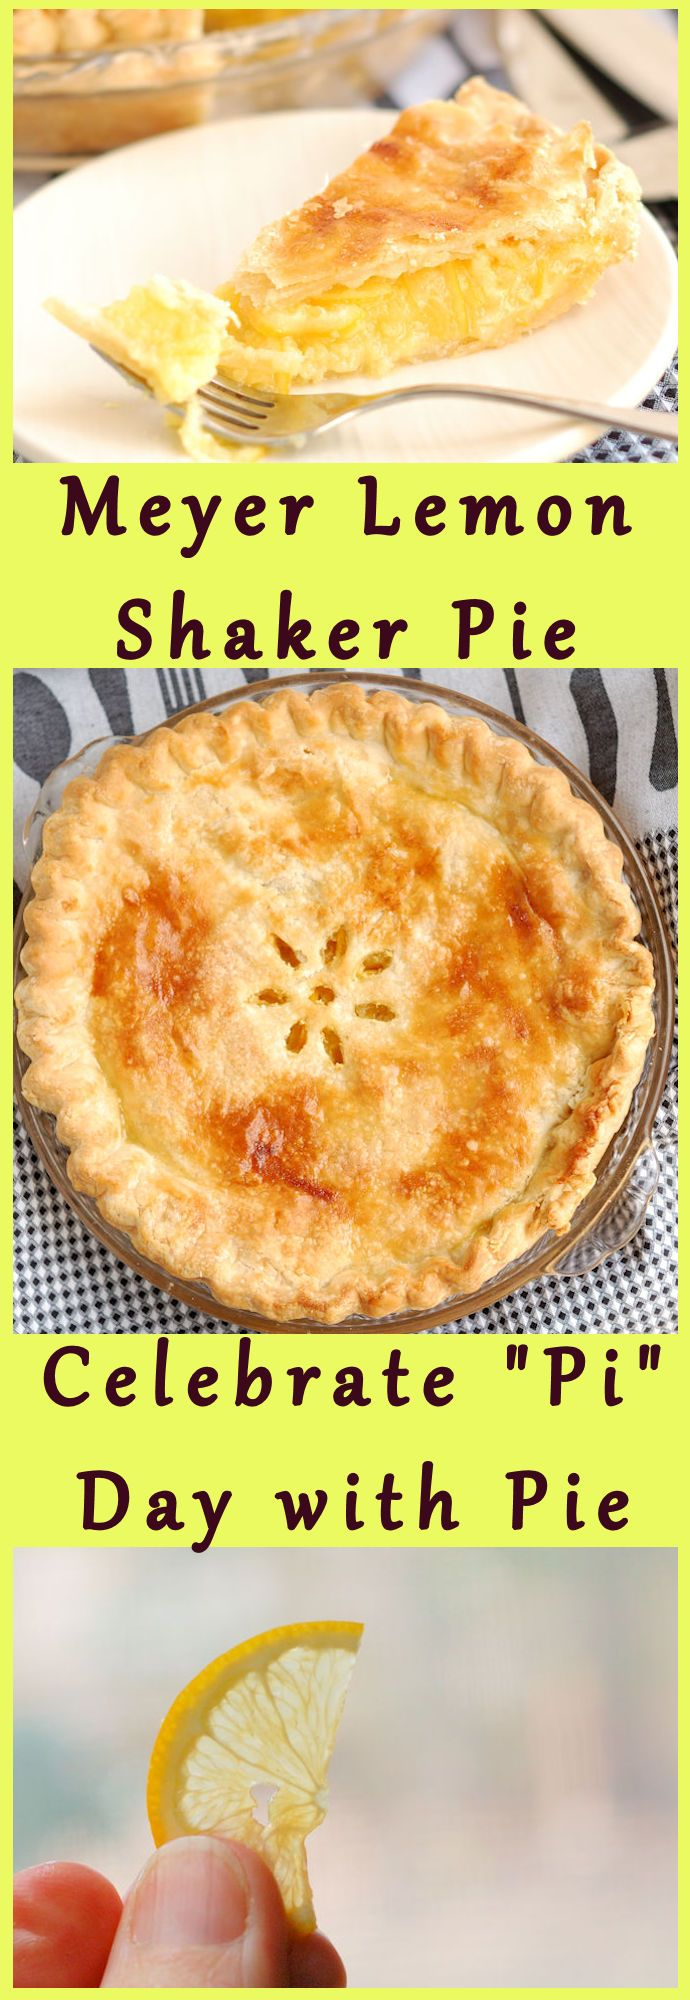 Meyer Lemon Shaker Pie is sooo delicious and has just a few ingredients. If you LOVE lemon, this is for you.